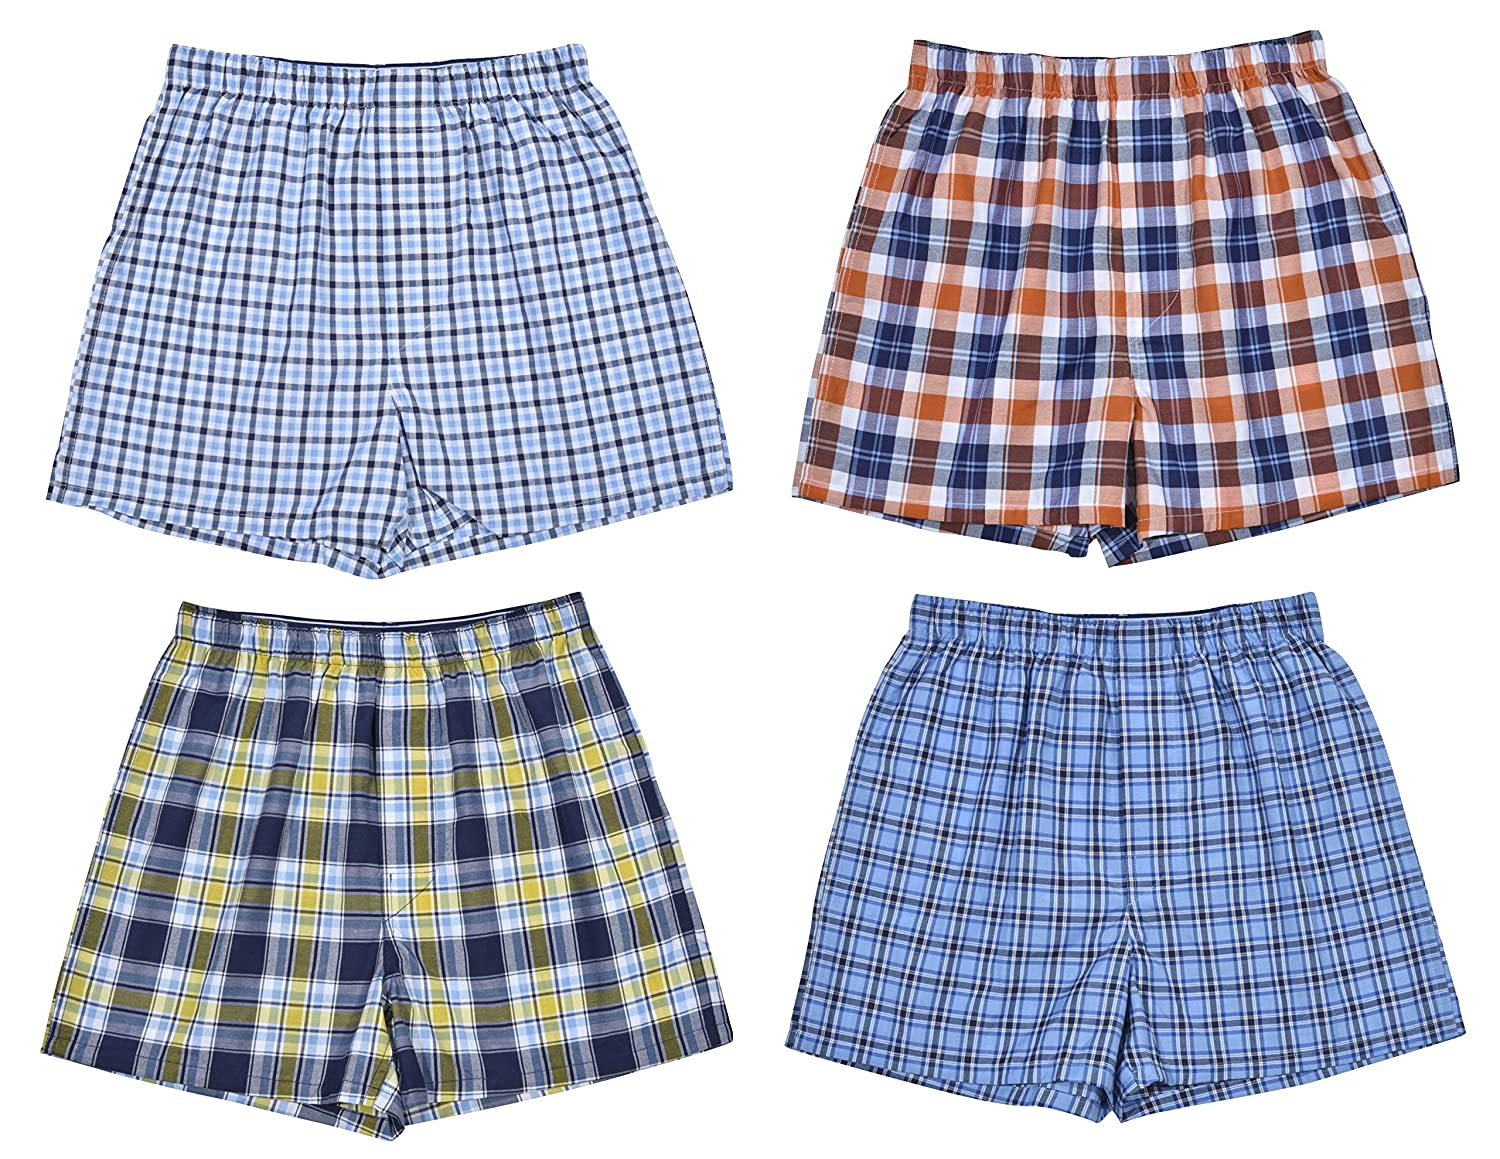 Perry Ellis Boys' 4-Pack Woven Boxer Shorts